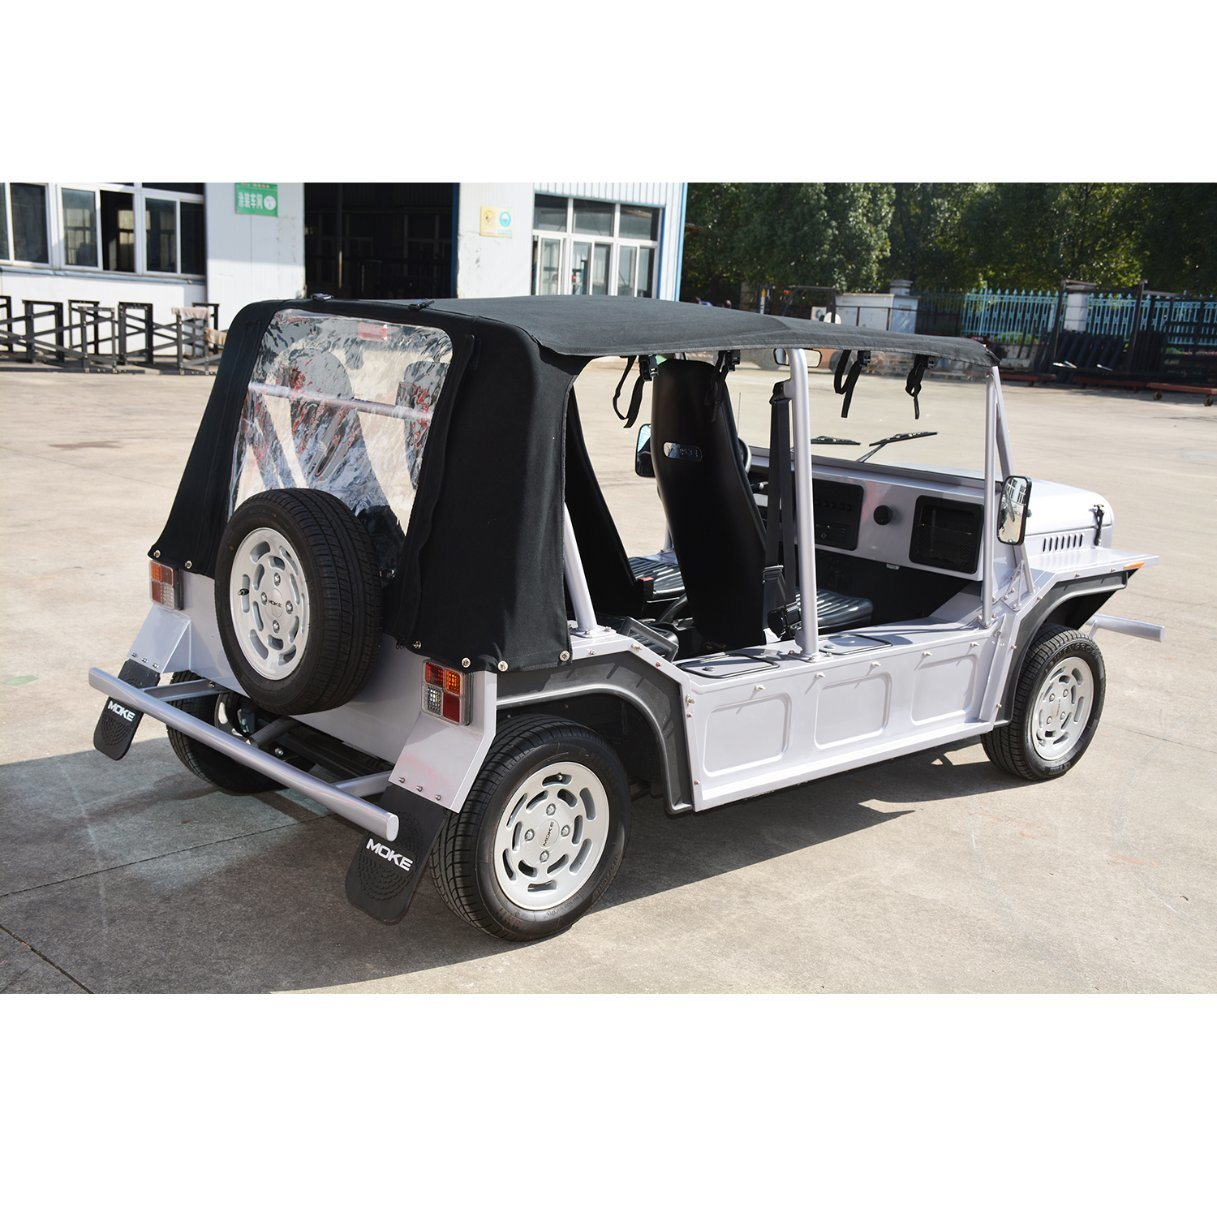 Gasoline Engine Tourist Coach Sightseeing Car, Moke Car